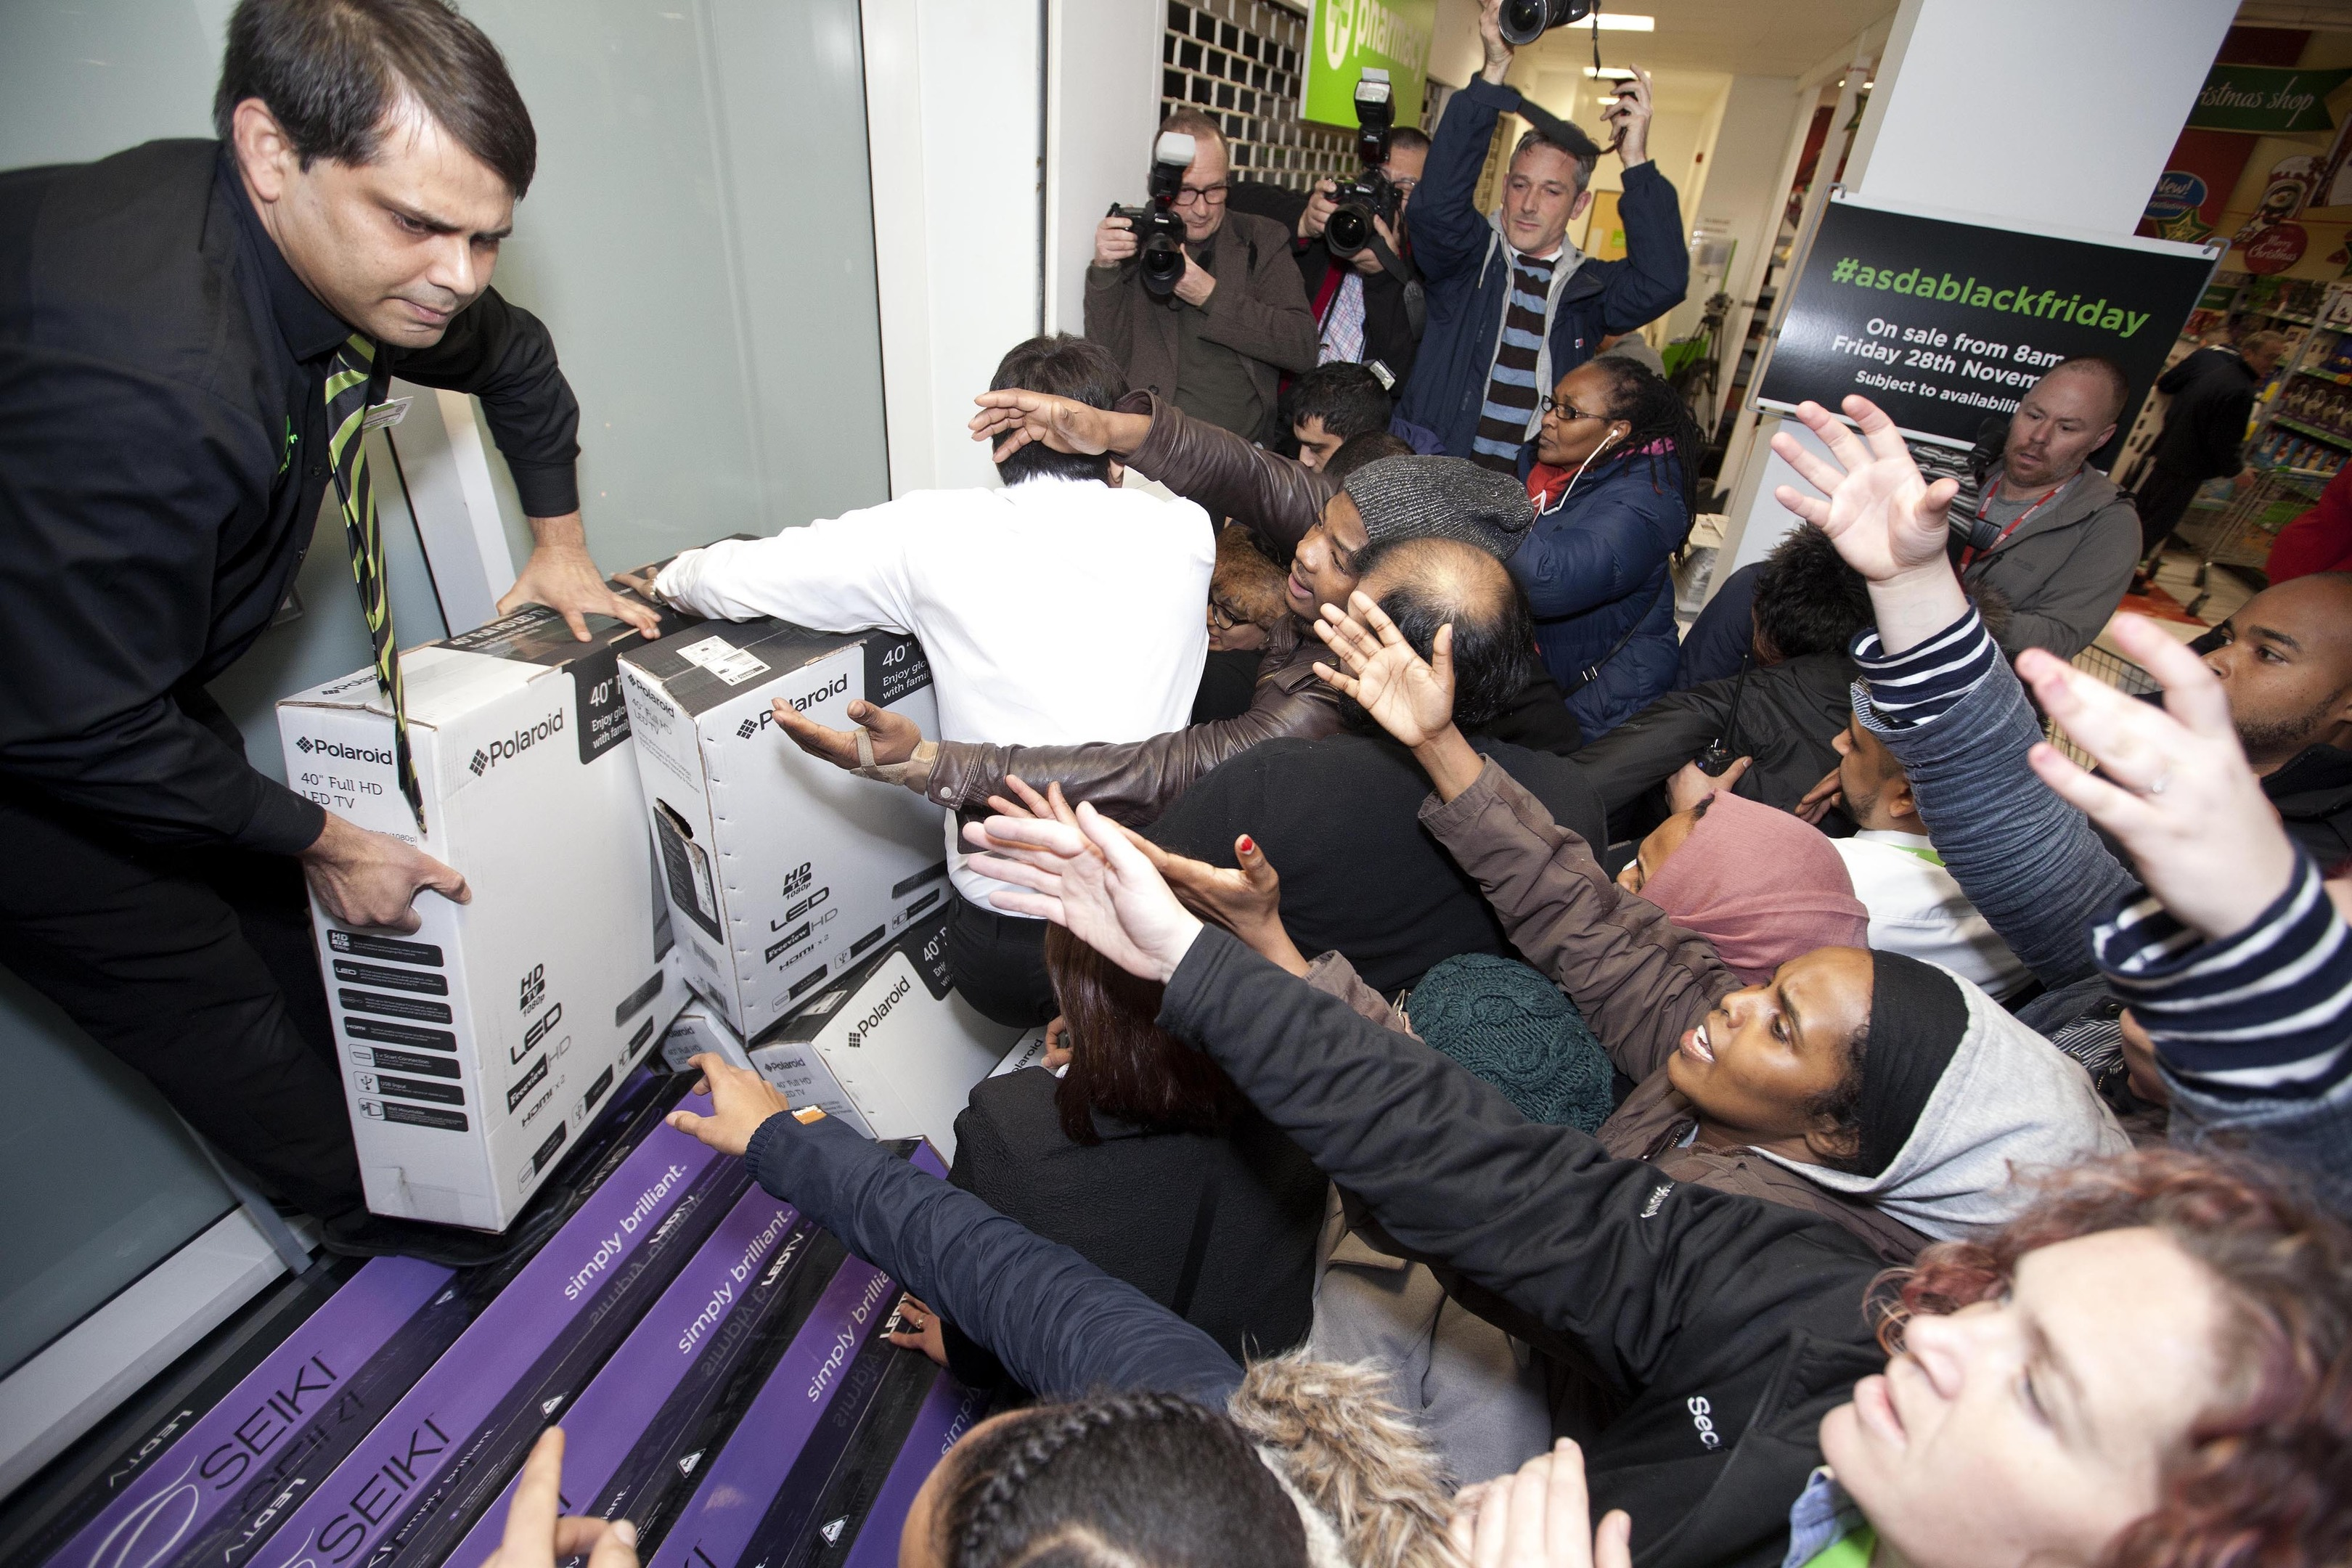 Shoppers scramble to grab a bargain at a previous Black Friday event